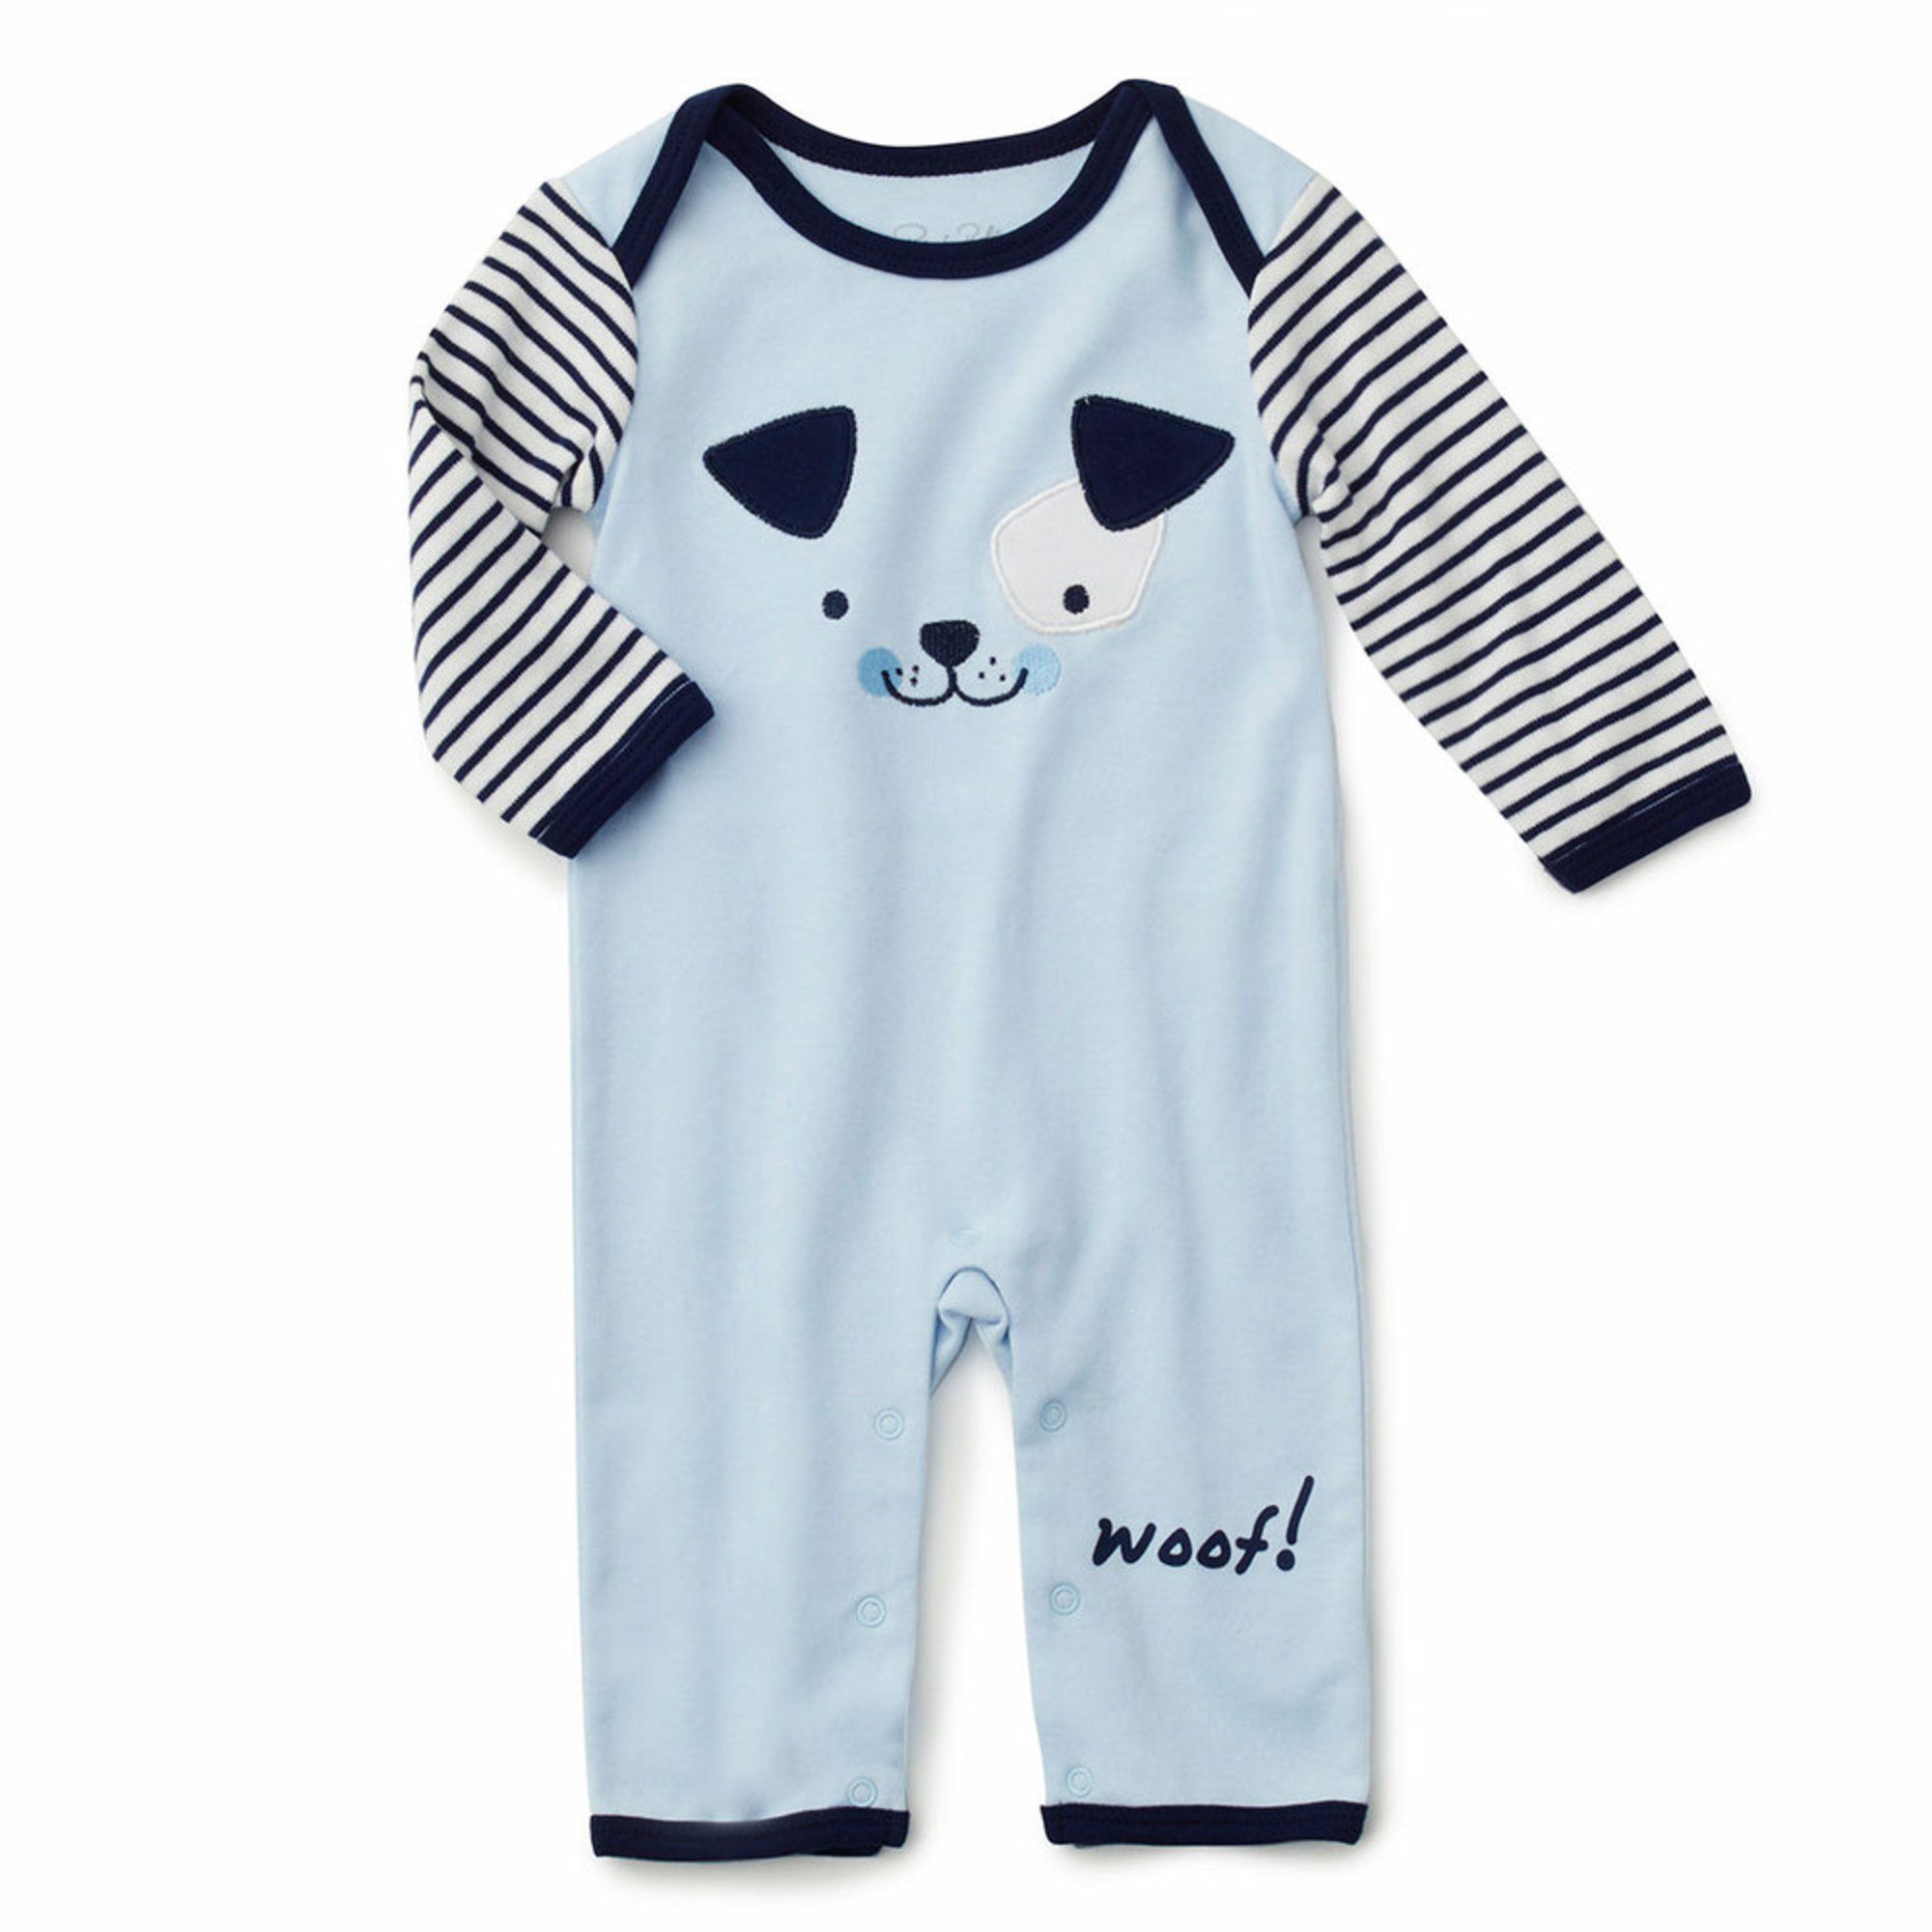 d68ddb4d2 Rene Rofe Baby Boys' Dog Stretchie Coveralls | Baby Boys' One Piece ...